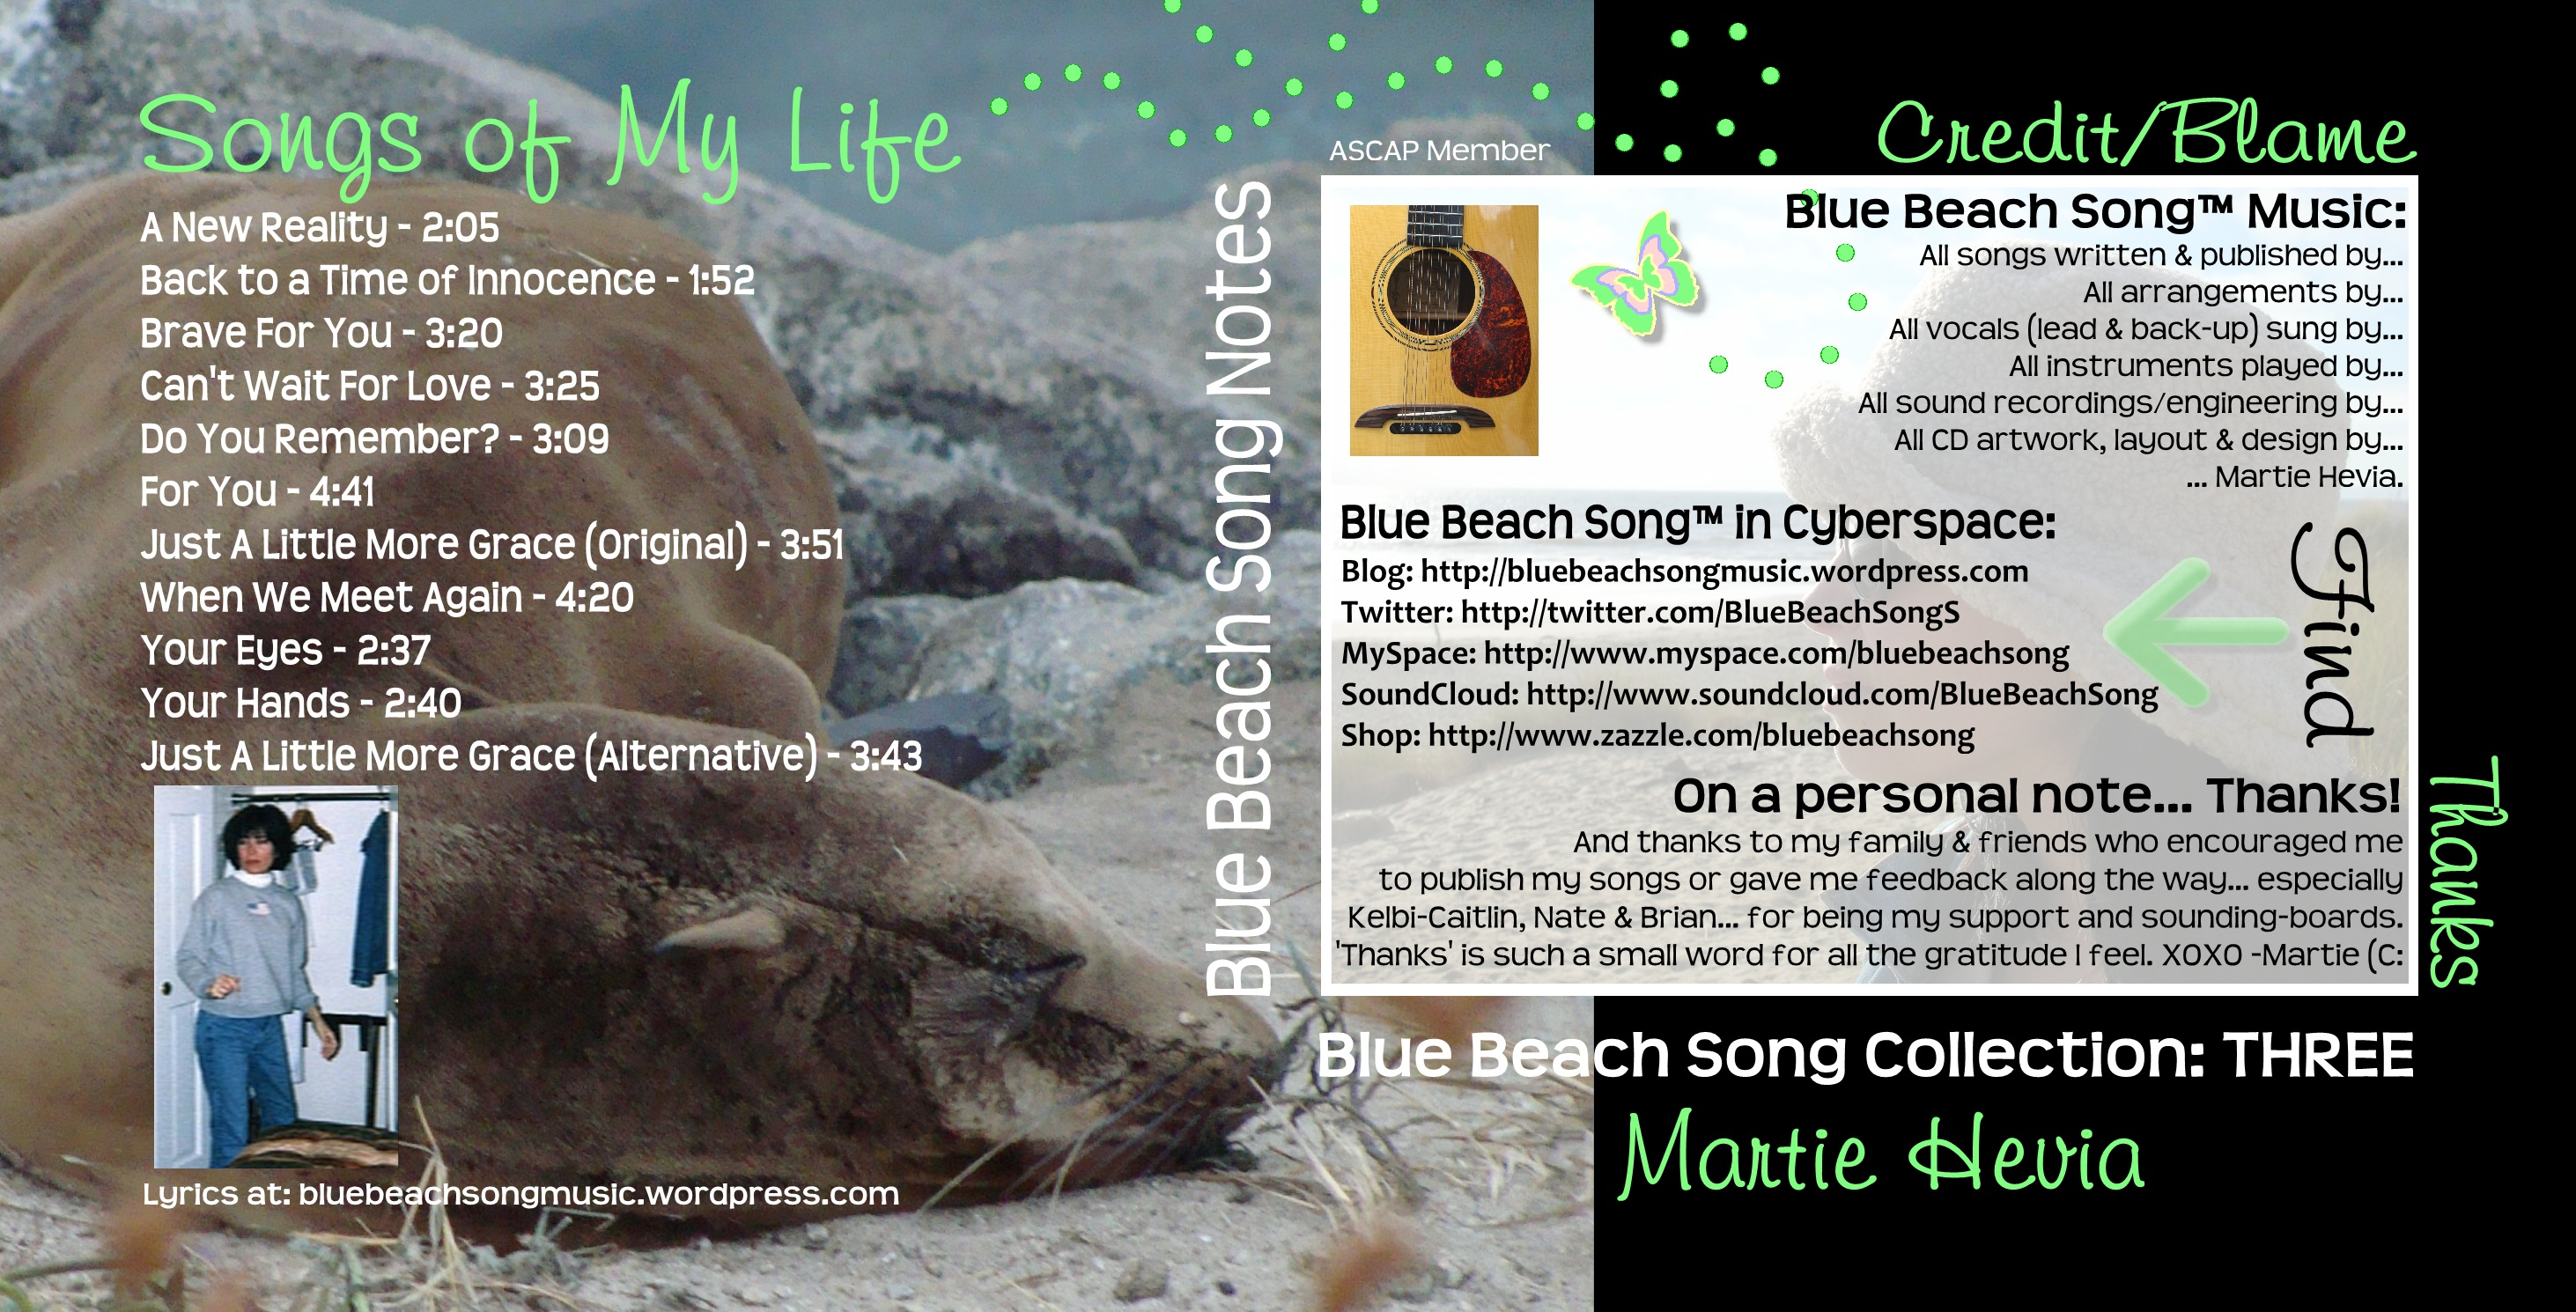 Blue Beach Song Collection: THREE - CD Booklet Inside Art